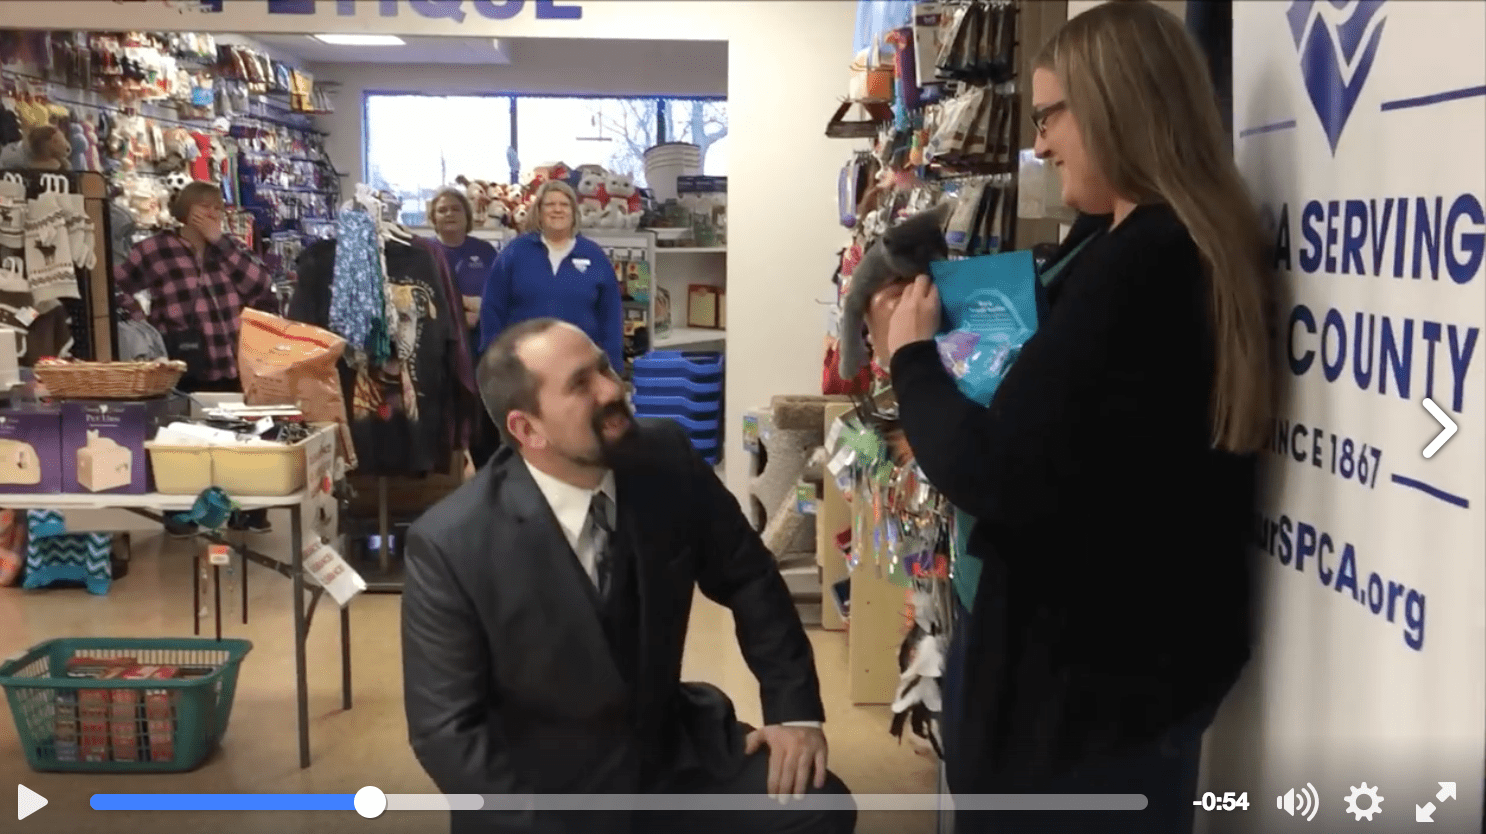 Kitten and SPCA Help Man Pop the Question - Life With Cats